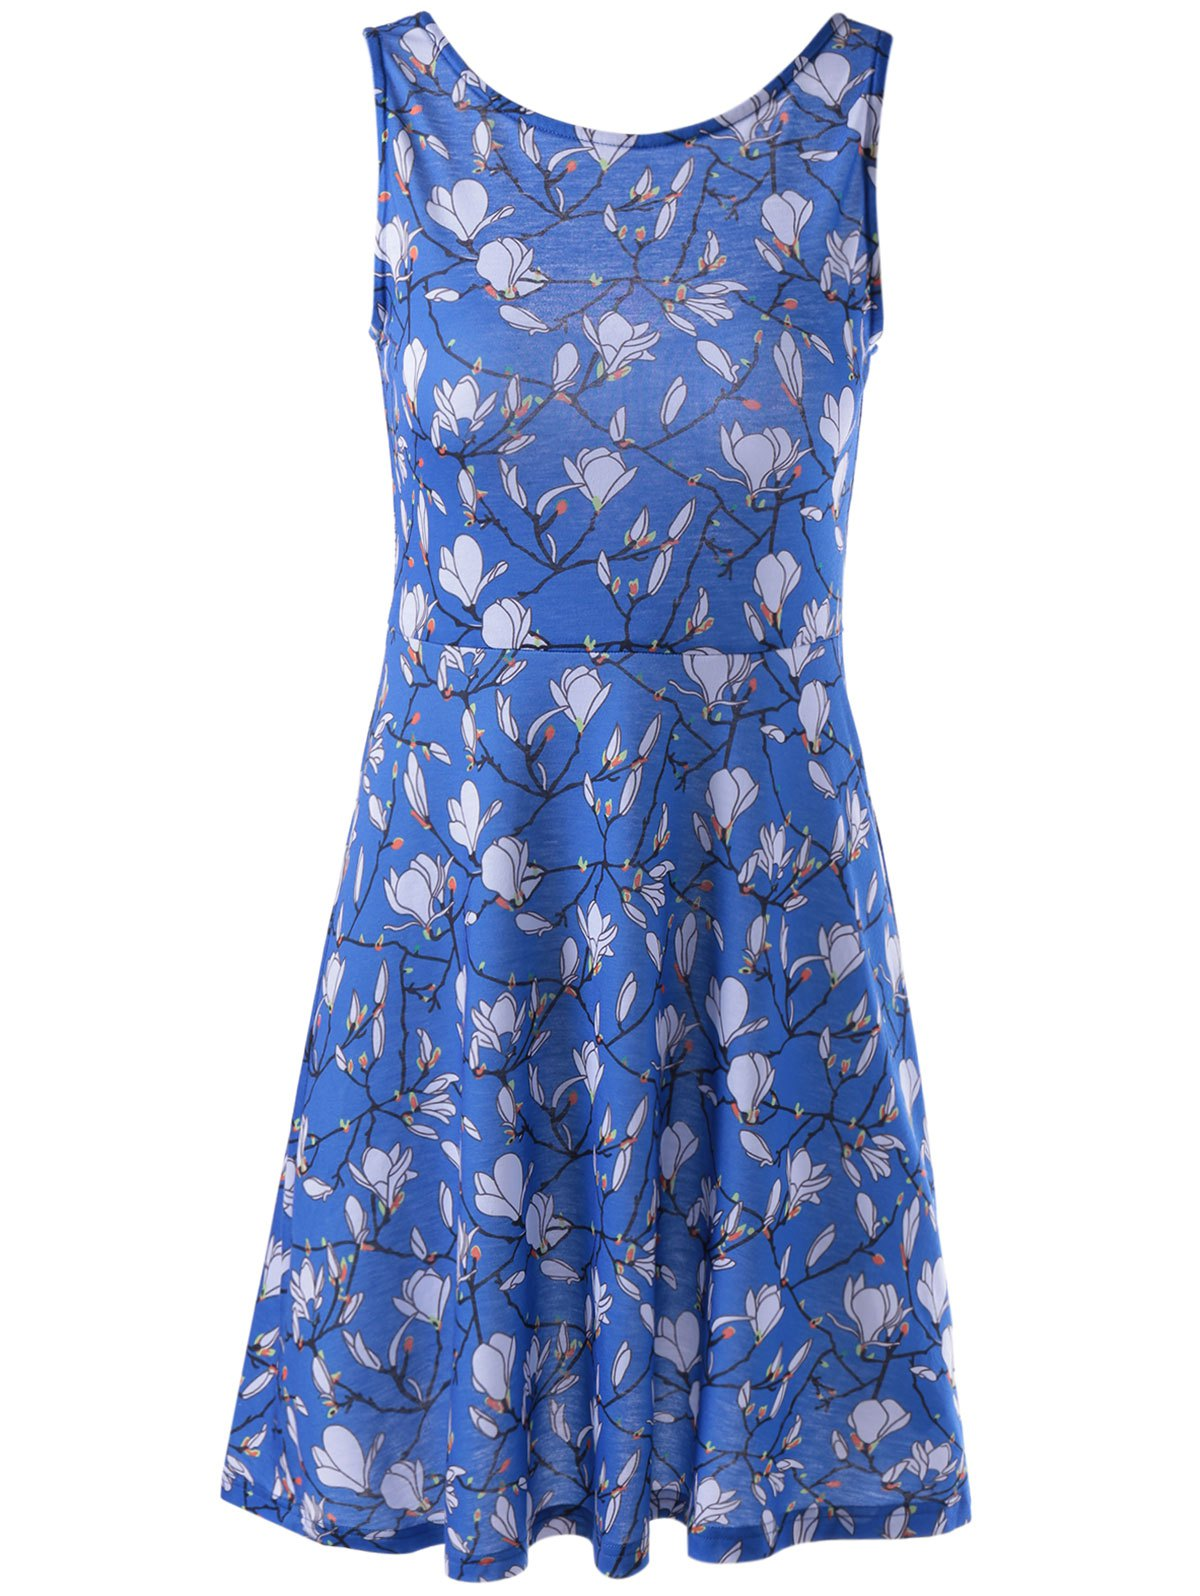 Stylish Printing Vest Dress For Women - COLORMIX XL